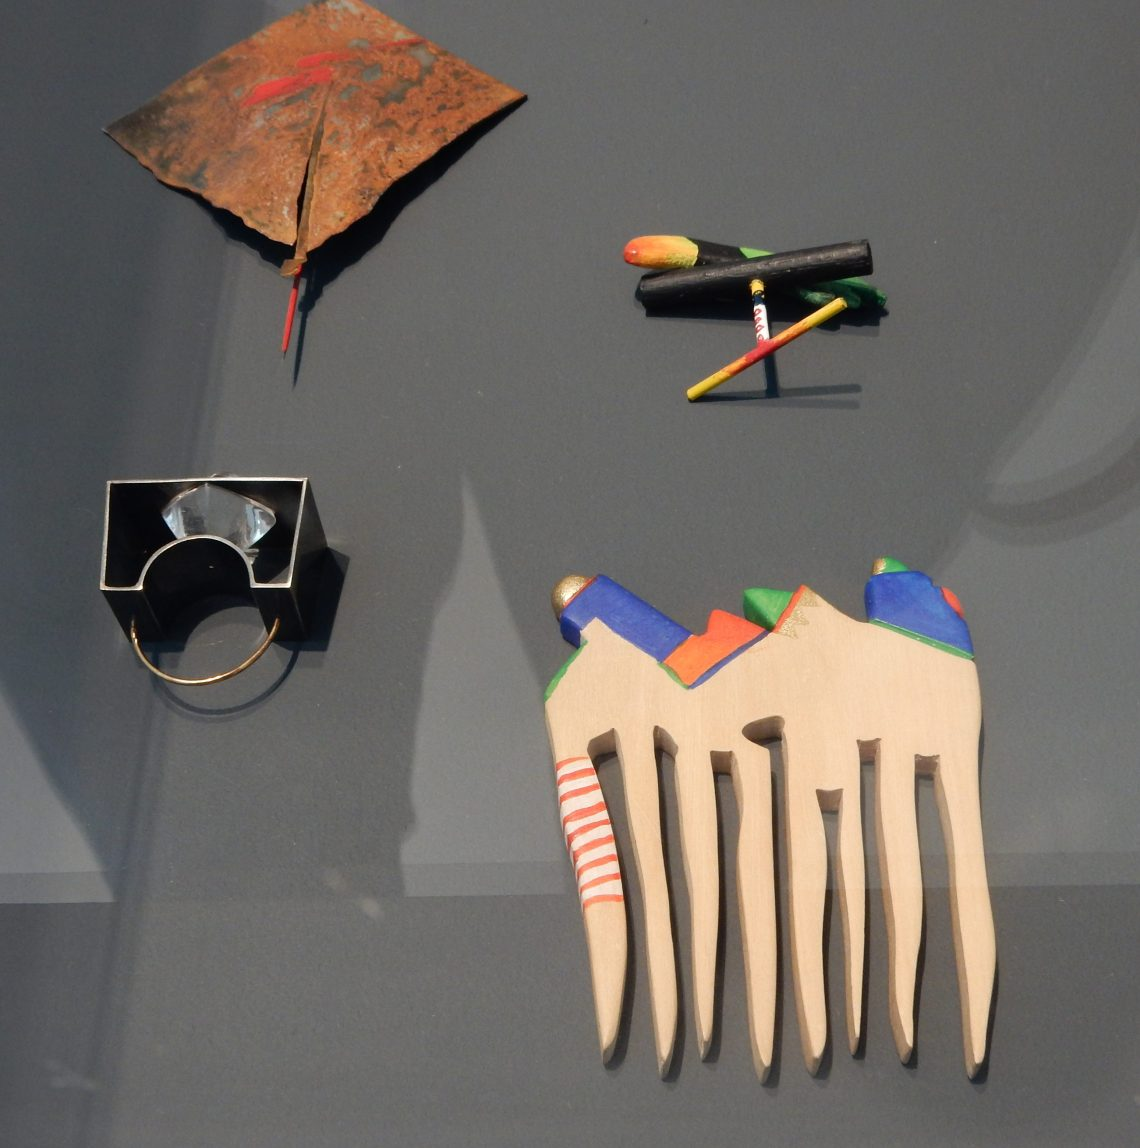 Marion Herbst, broche, 1980, Papegaai nr. 2, ring, 1984, ring, 1991 en kam, 1989. Collectie Benno Premsela. Foto Esther Doornbusch, 28 augustus 2018, CC BY 4.0